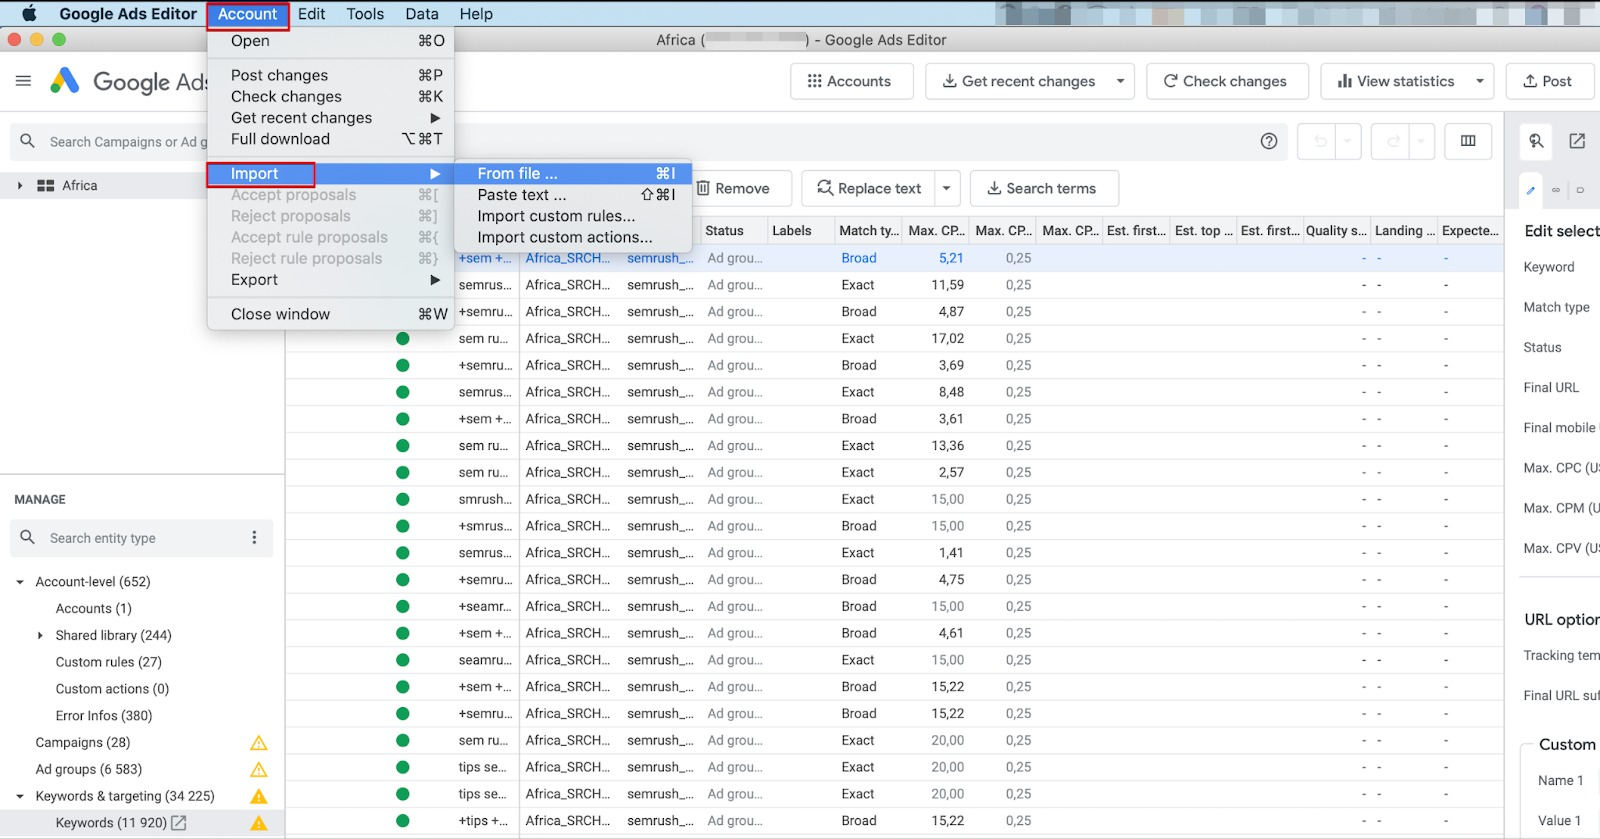 How to Upload Your Keyword List from PPC Keyword Tool to Google Ads image 3